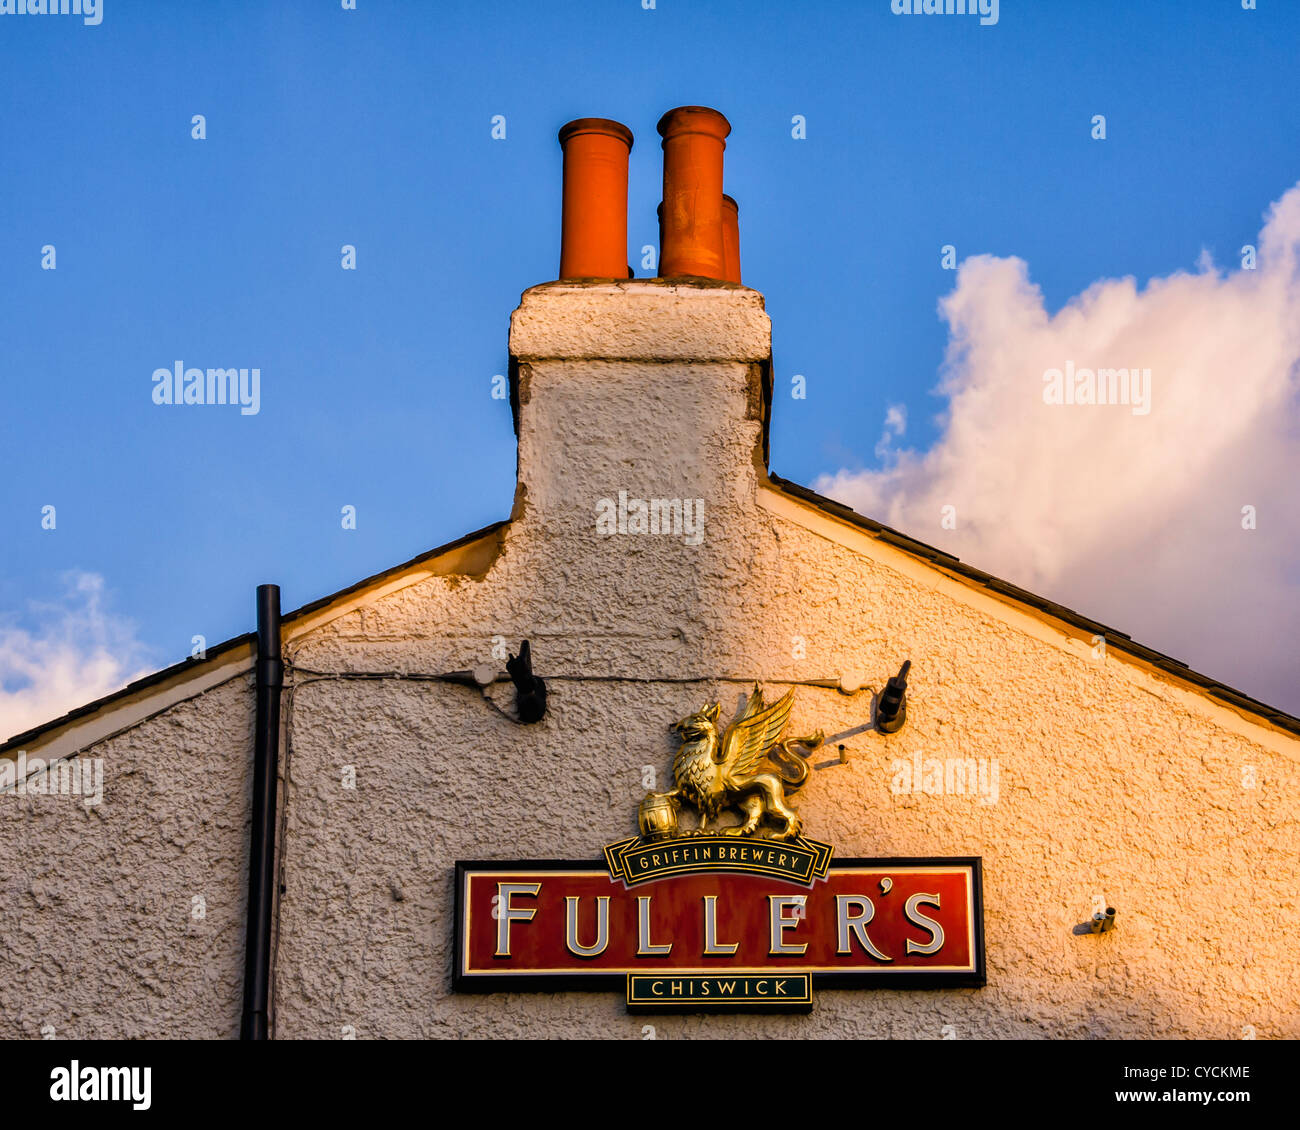 Fuller's Brewers sign on the Prince Blucher pub in Twickenham - Stock Image